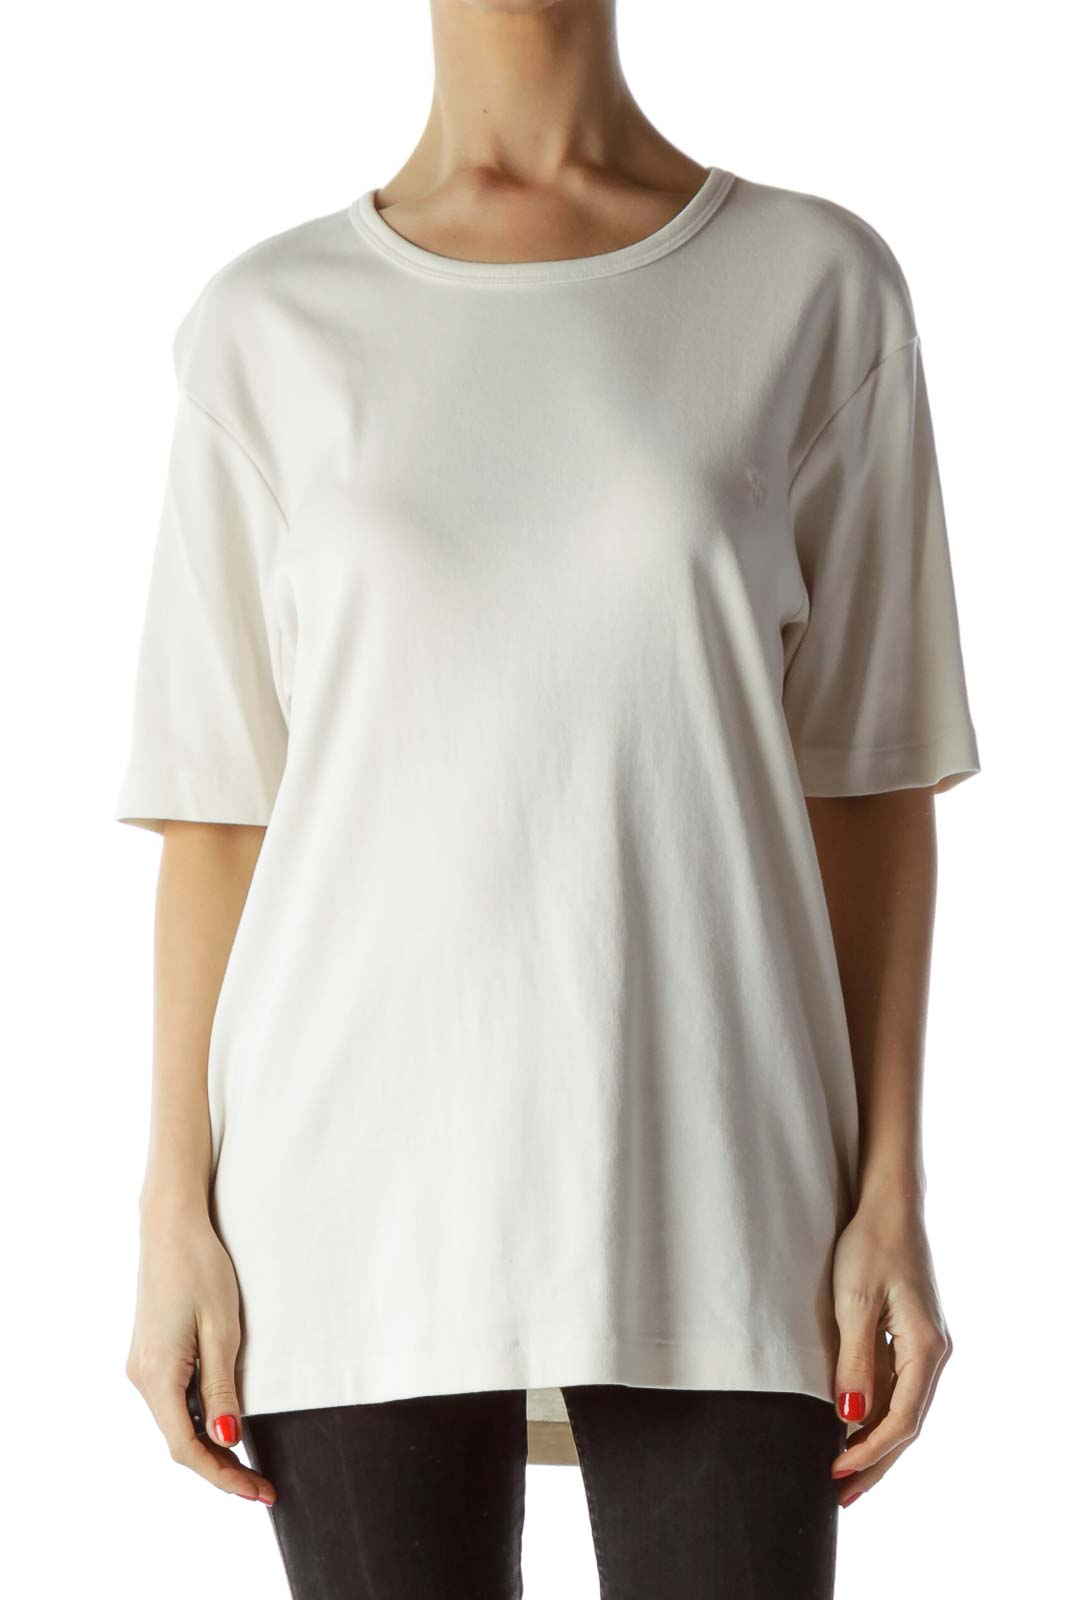 Cream Round Neck Short Sleeve Knit Top Front